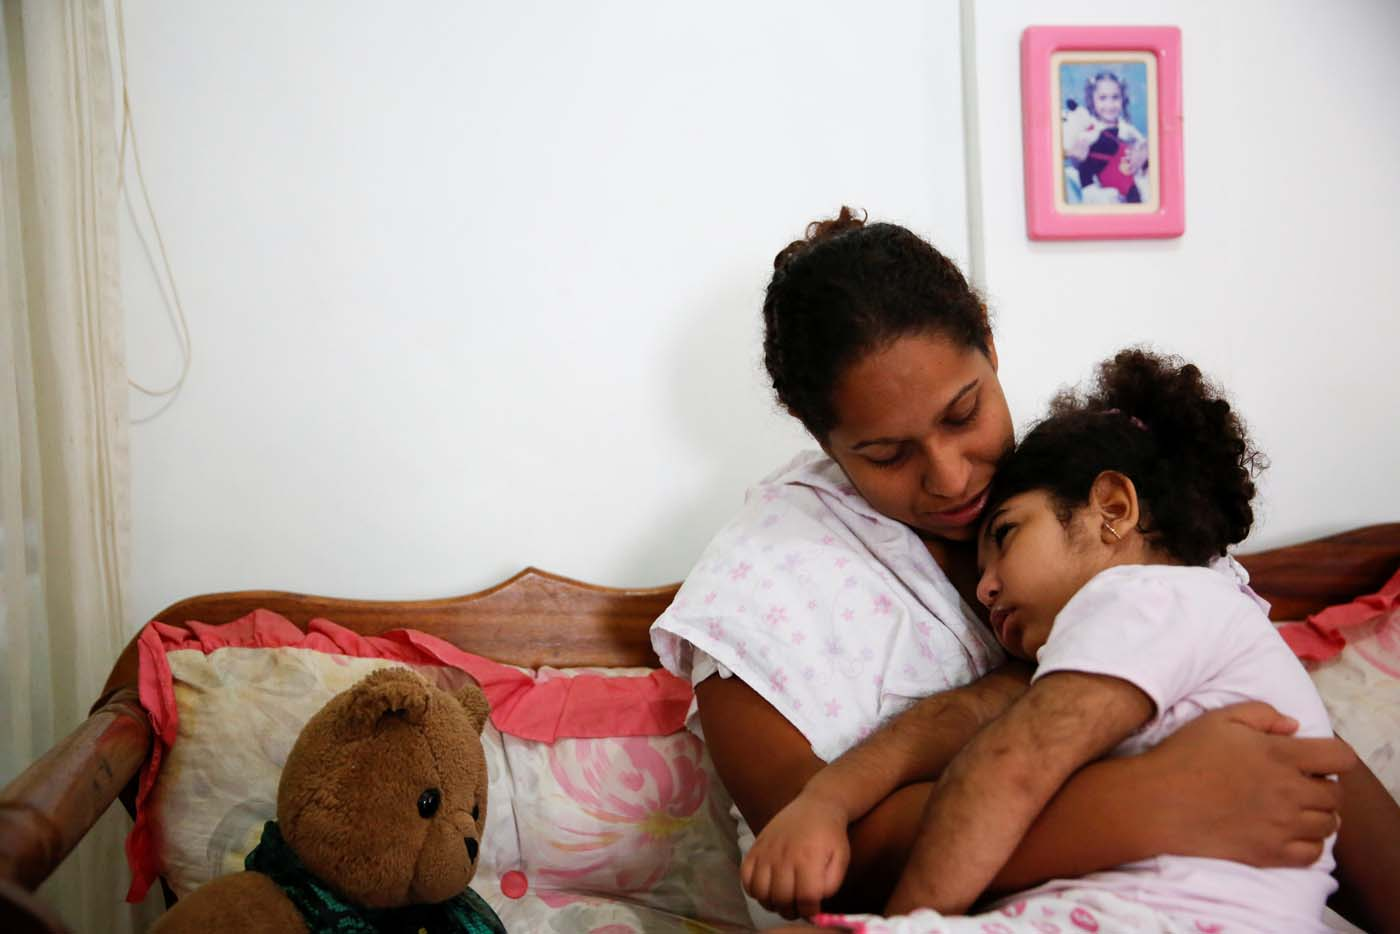 "Lusnay Echezuria, embraces her daughter Arioska Torres, 3, a neurological patient being treated with anticonvulsants, at their house in Caracas, Venezuela January 30, 2017. REUTERS/Carlos Garcia Rawlins   SEARCH ""EPILEPSY CARACAS"" FOR THIS STORY. SEARCH ""WIDER IMAGE"" FOR ALL STORIES."